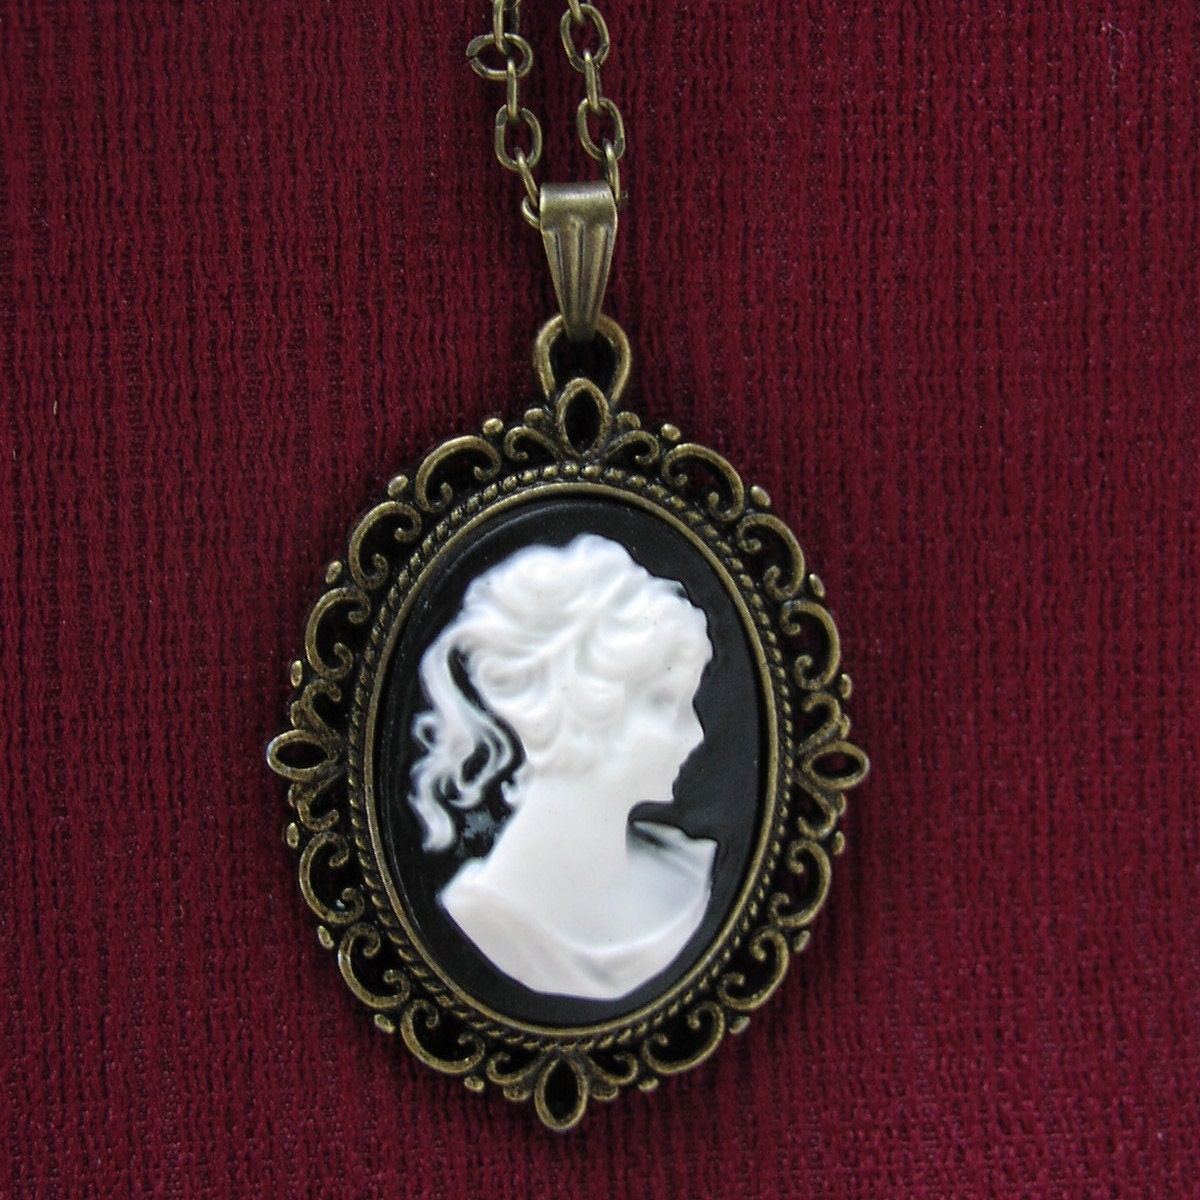 cameo necklace black and white oval cameo